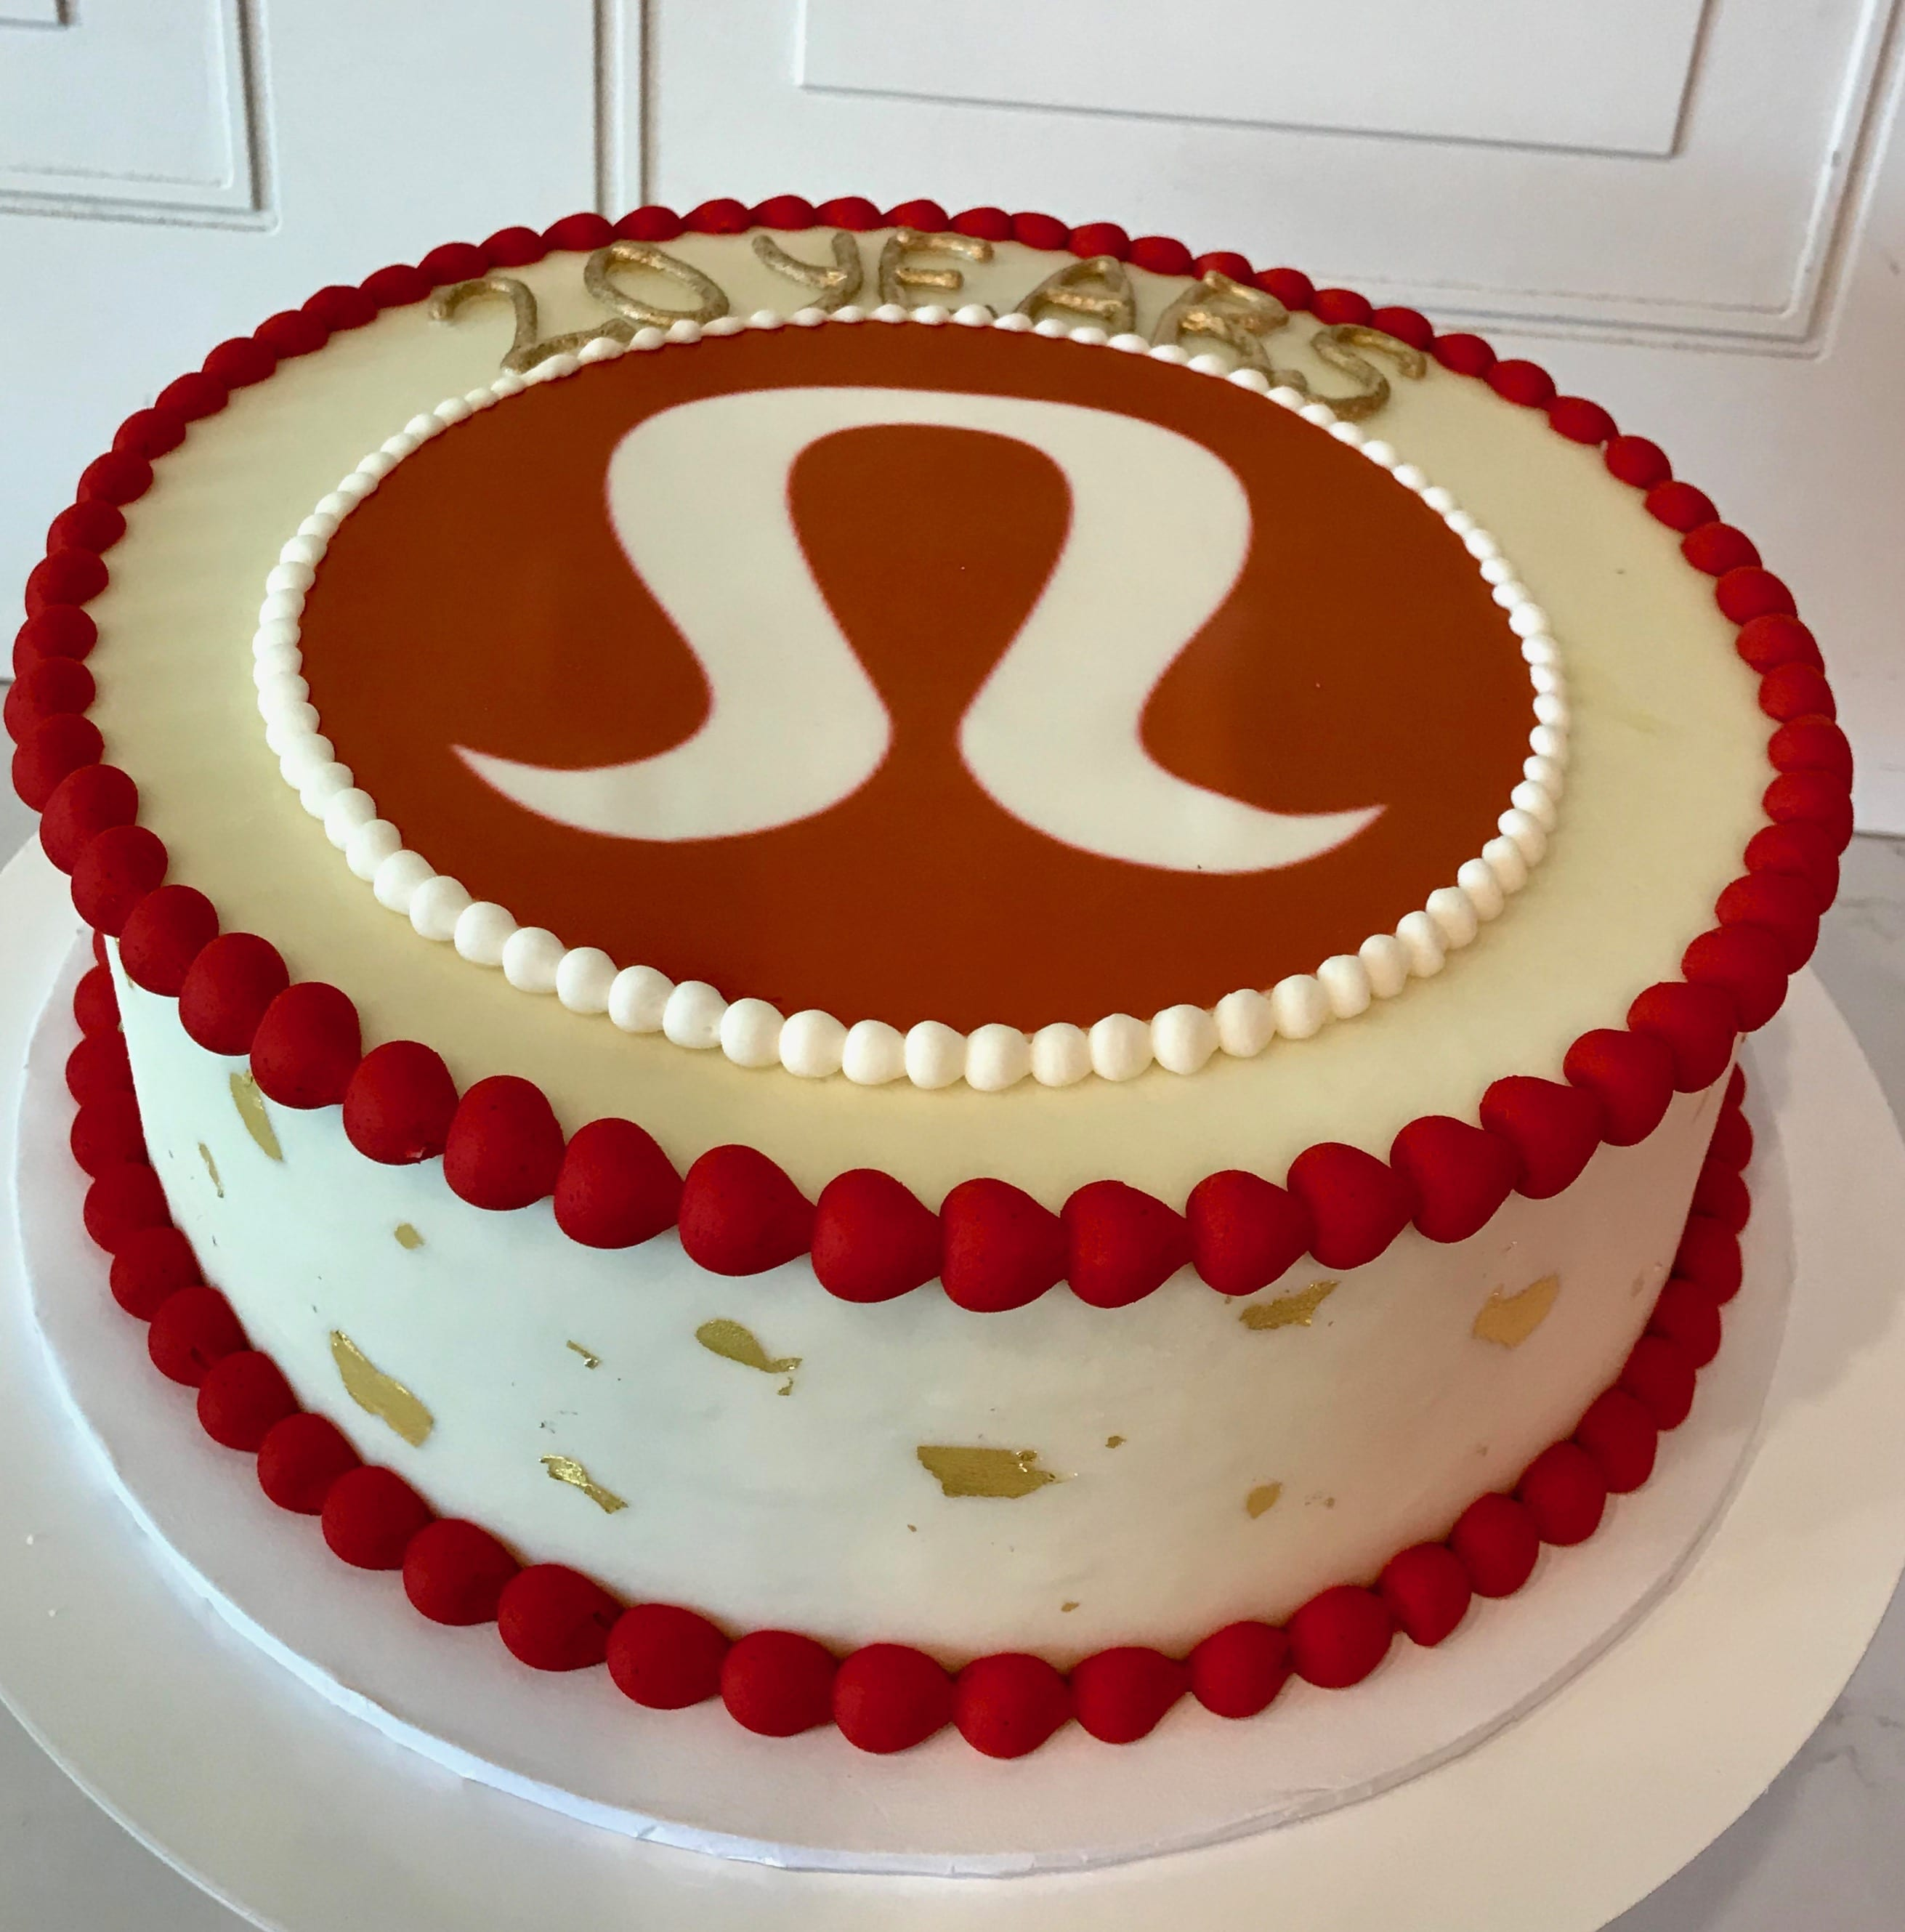 Lululemon Cake | 3 Sweet Girls Cakery